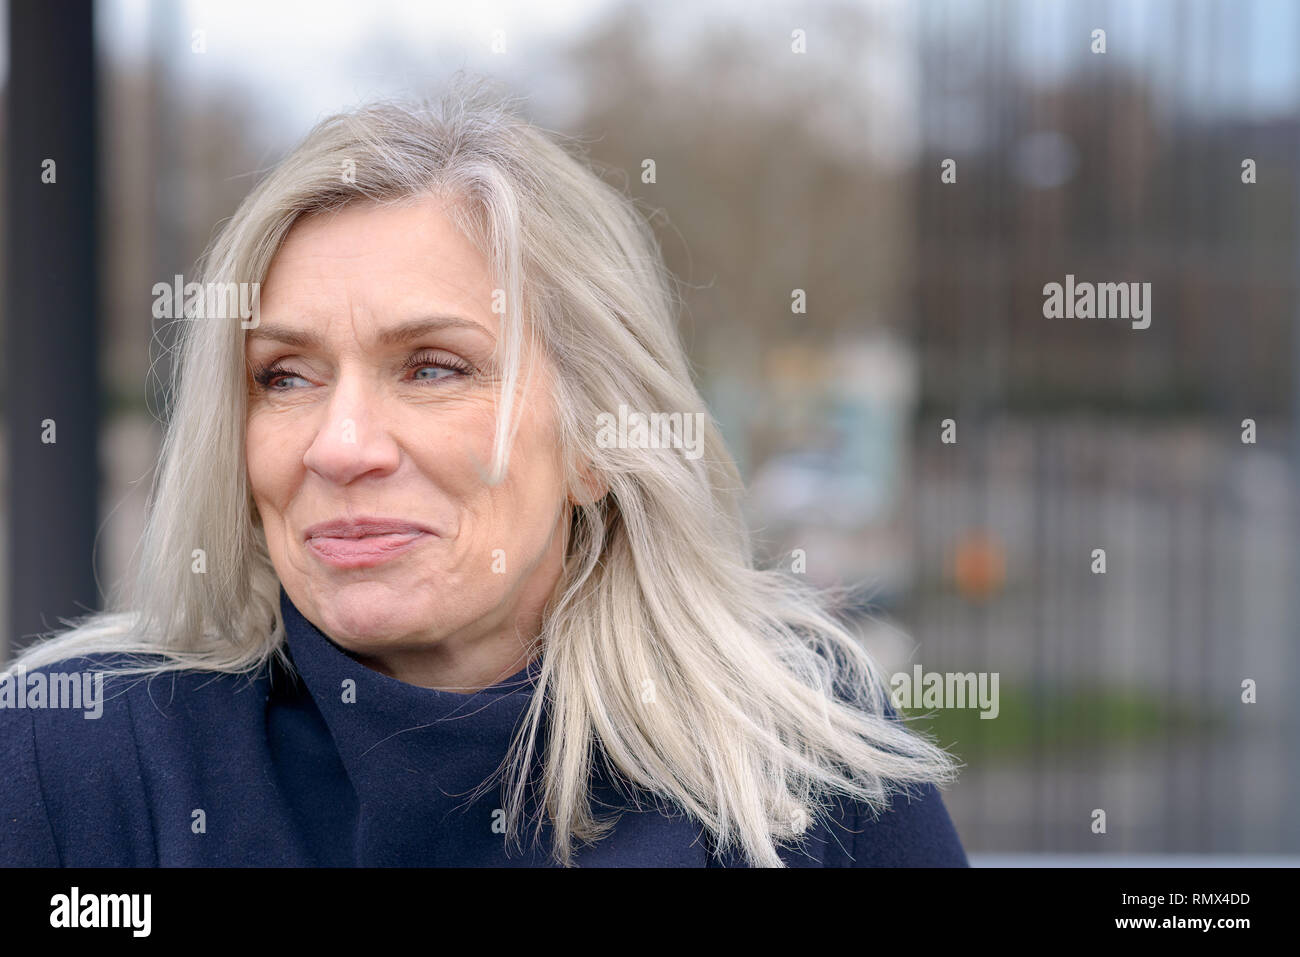 Attractive mature woman with tousled shoulder length blond hair looking to the left of the frame with a pleased smile against a blurred urban backgrou - Stock Image